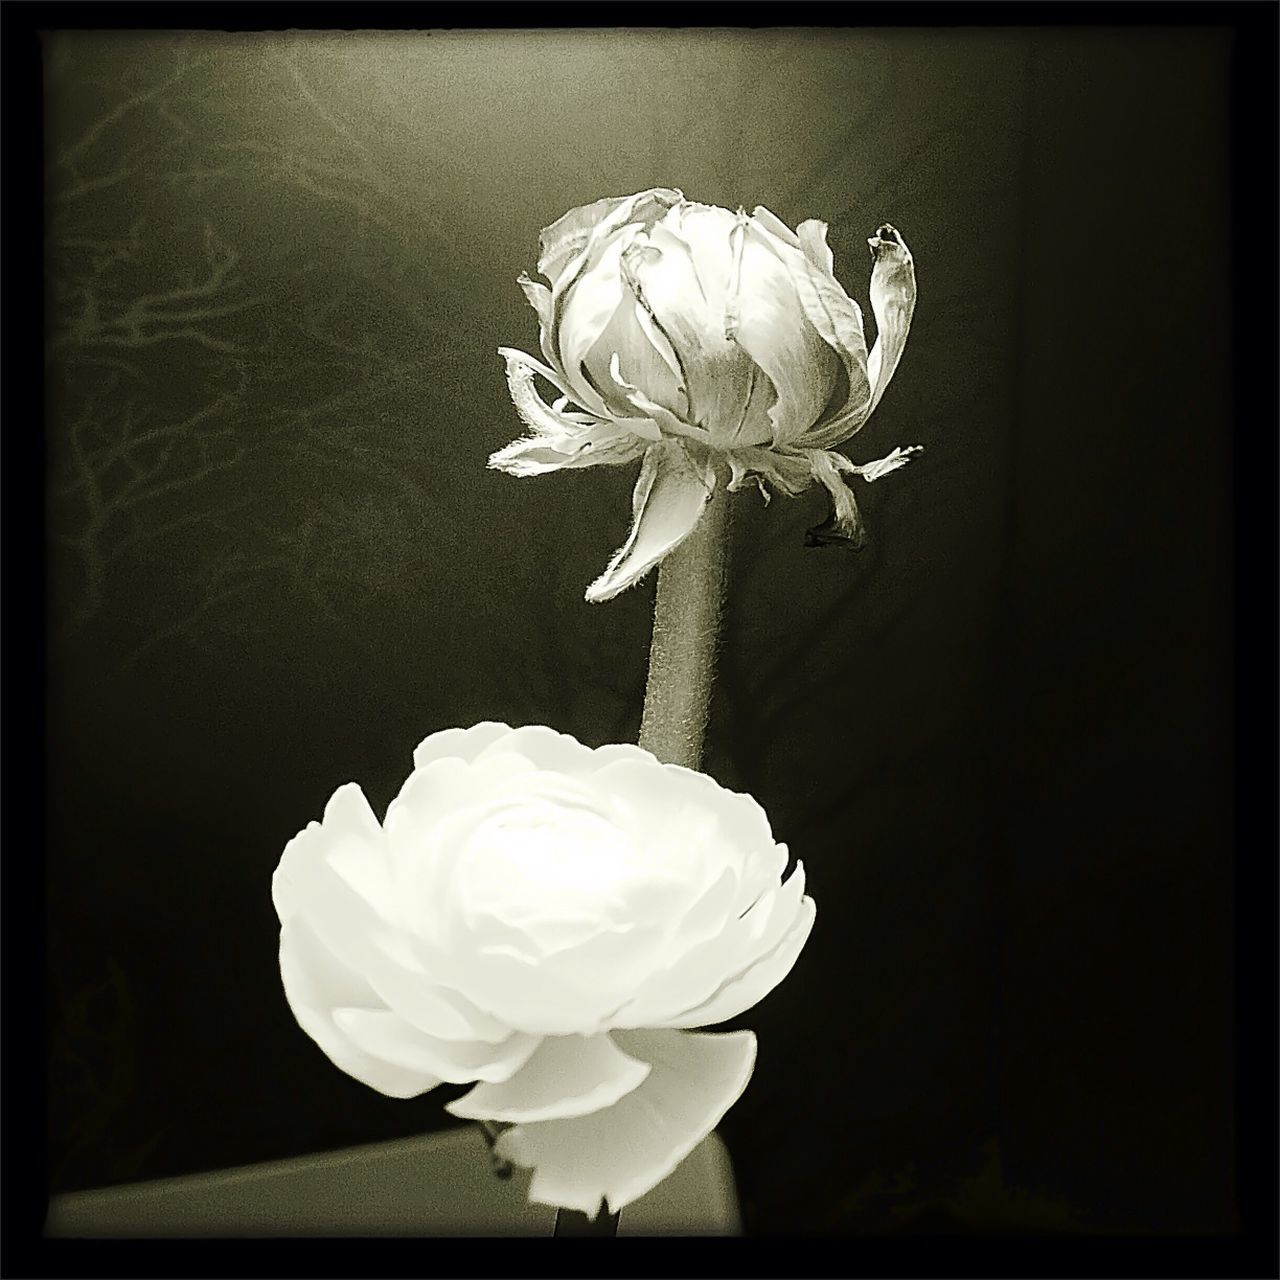 flower, transfer print, auto post production filter, petal, freshness, flower head, fragility, stem, close-up, growth, bloom, rose - flower, beauty in nature, nature, single flower, blossom, studio shot, botany, springtime, black and white, creativity, in bloom